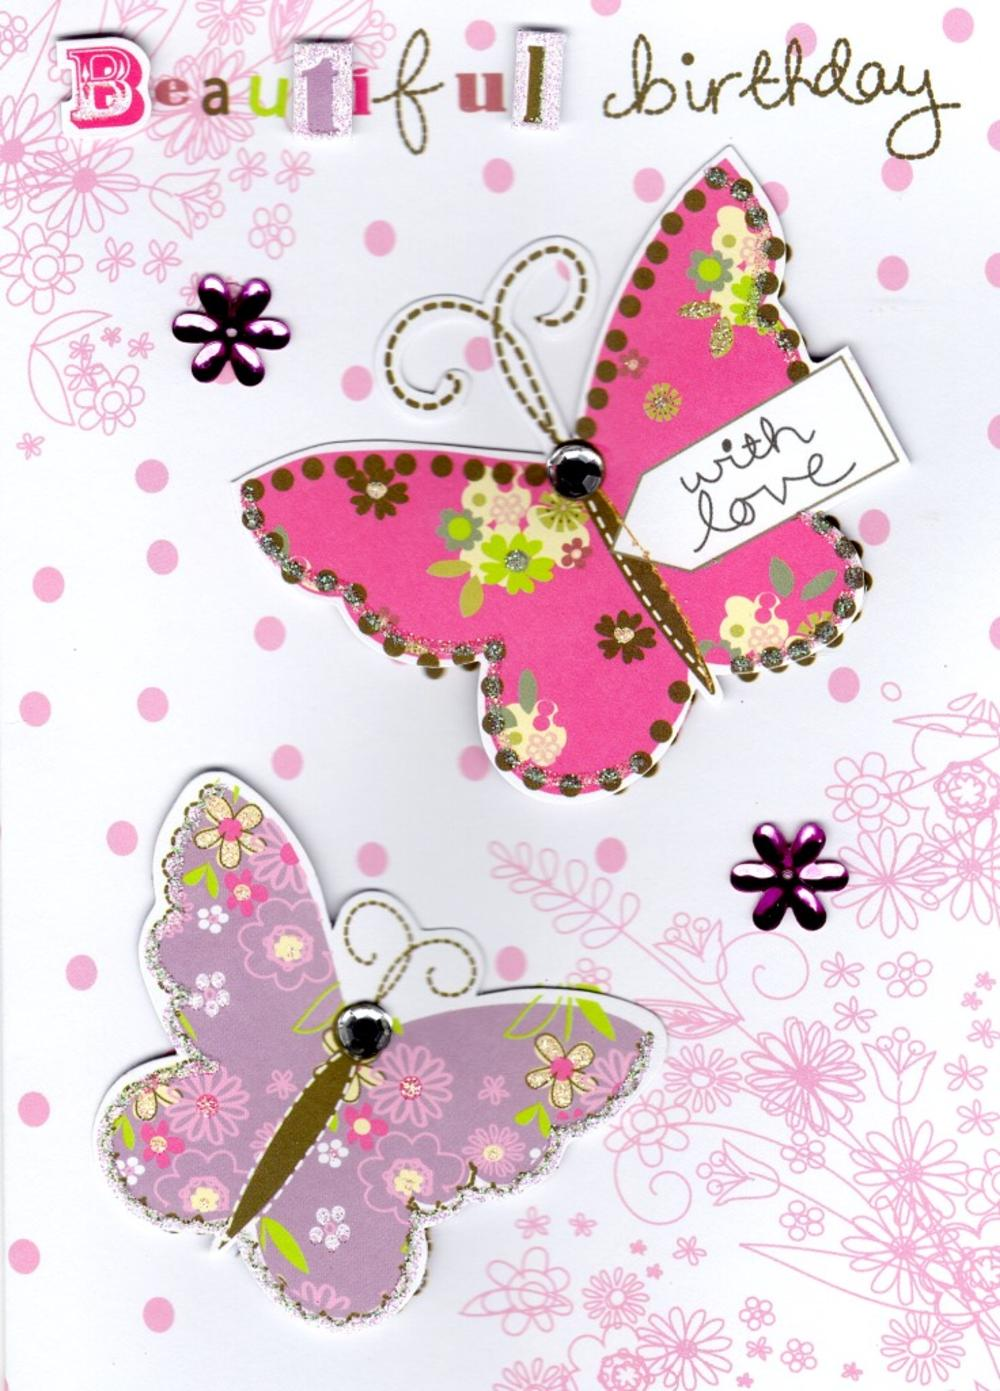 Beautiful Butterfly Handmade Birthday Card